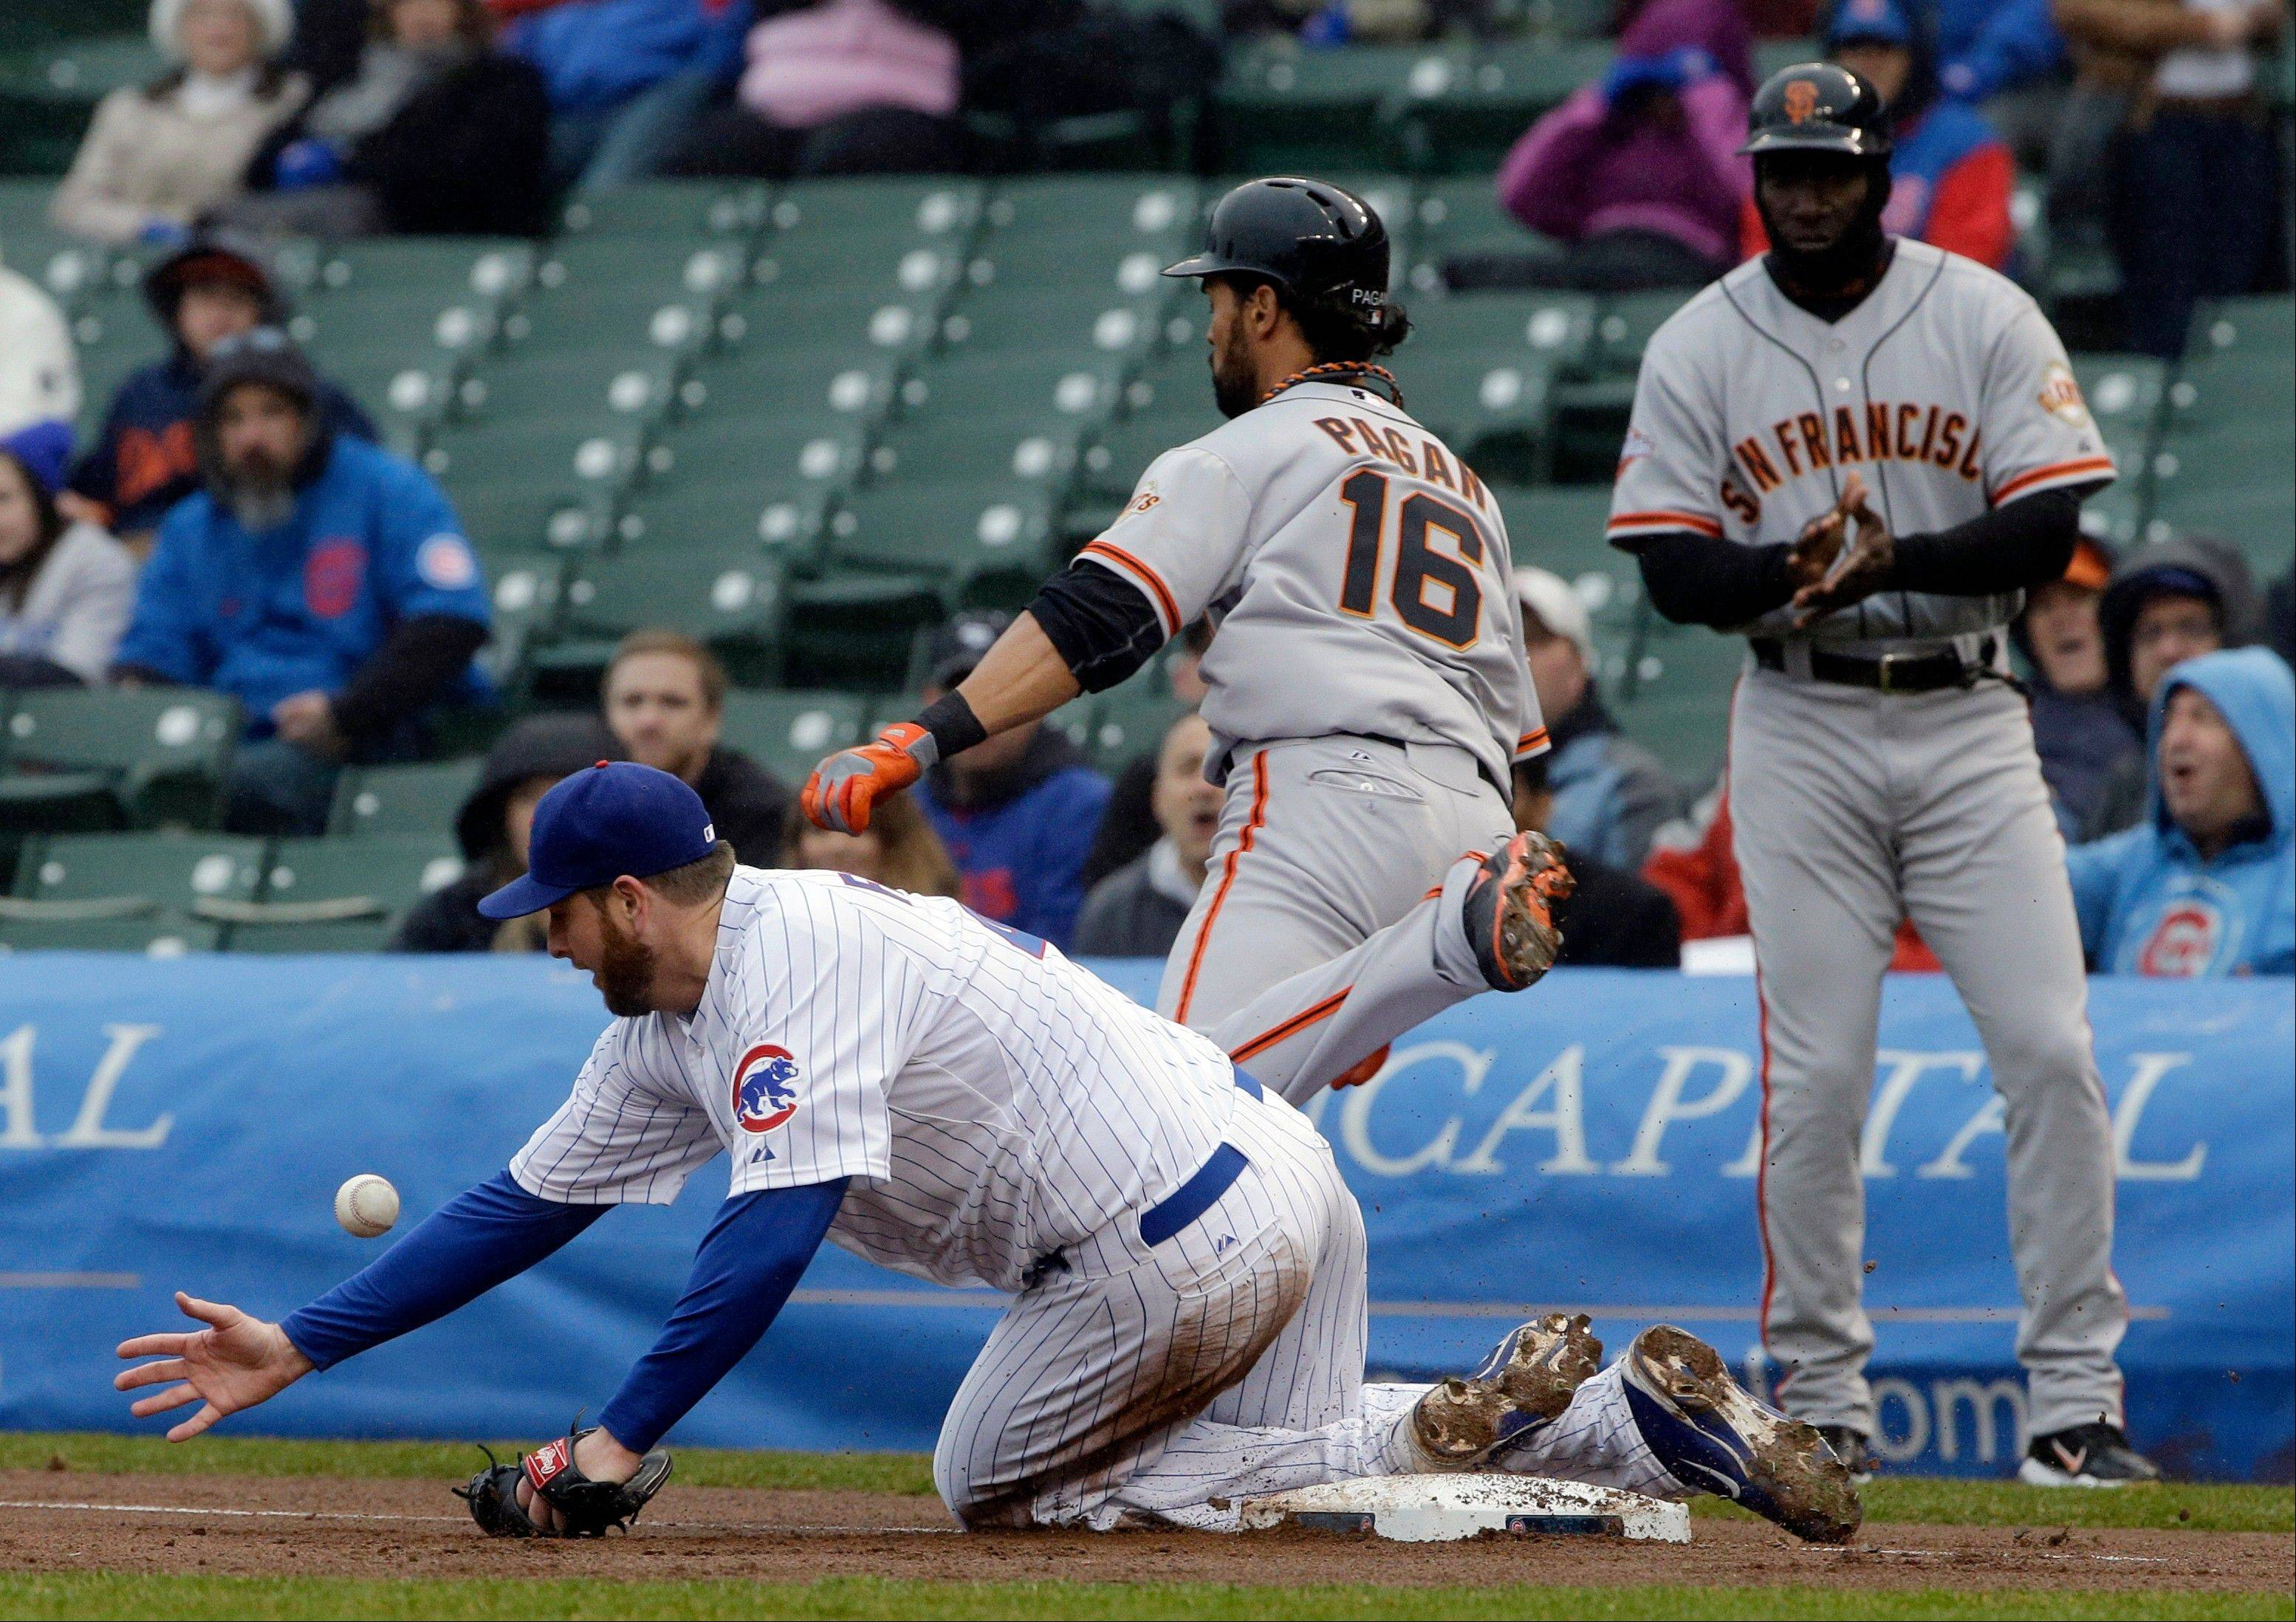 Cubs pitcher Scott Feldman, bottom, can't make the catch from first baseman Anthony Rizzo as the Giants' Angel Pagan is safe at first base in the first inning Thursday.